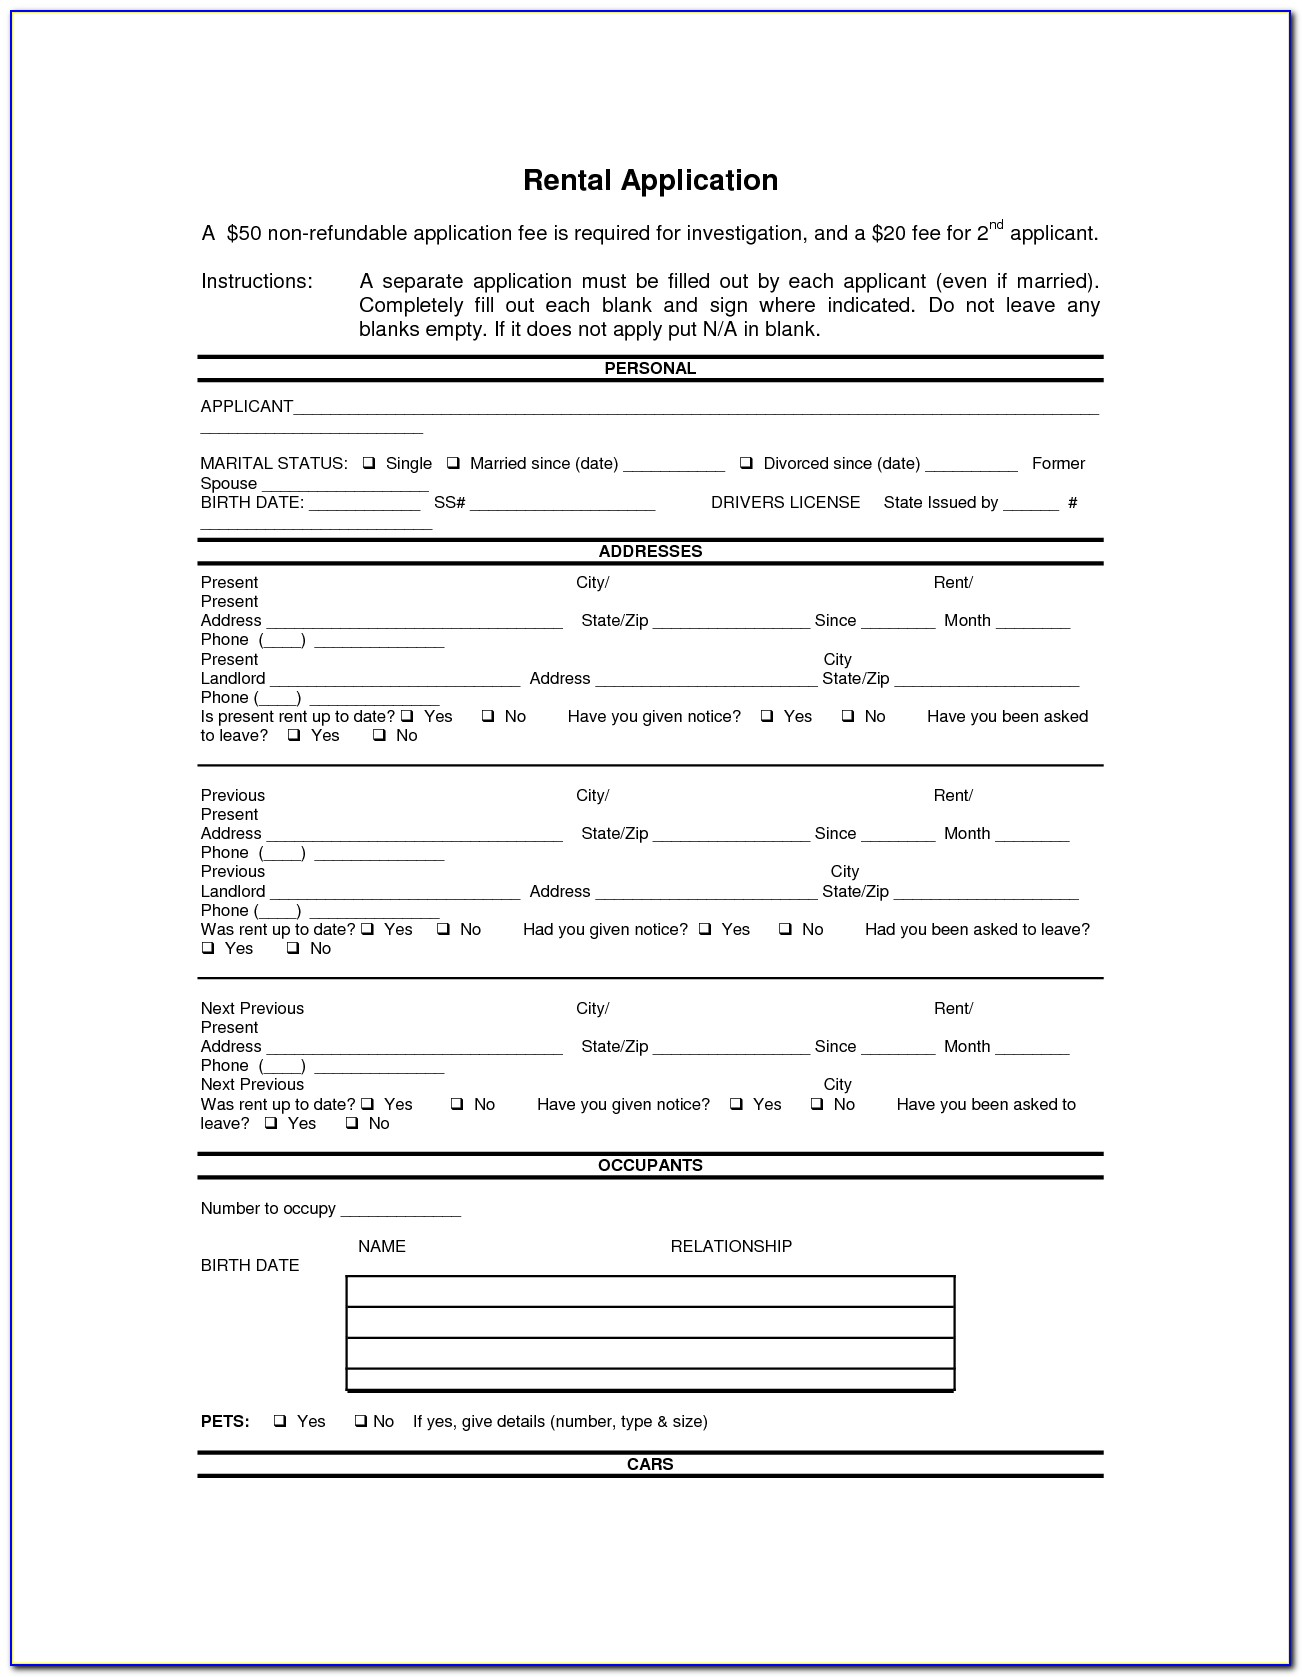 Doc.#592799: Printable Rental Agreement Forms – Free Rental Forms With Free Printable Rental Application